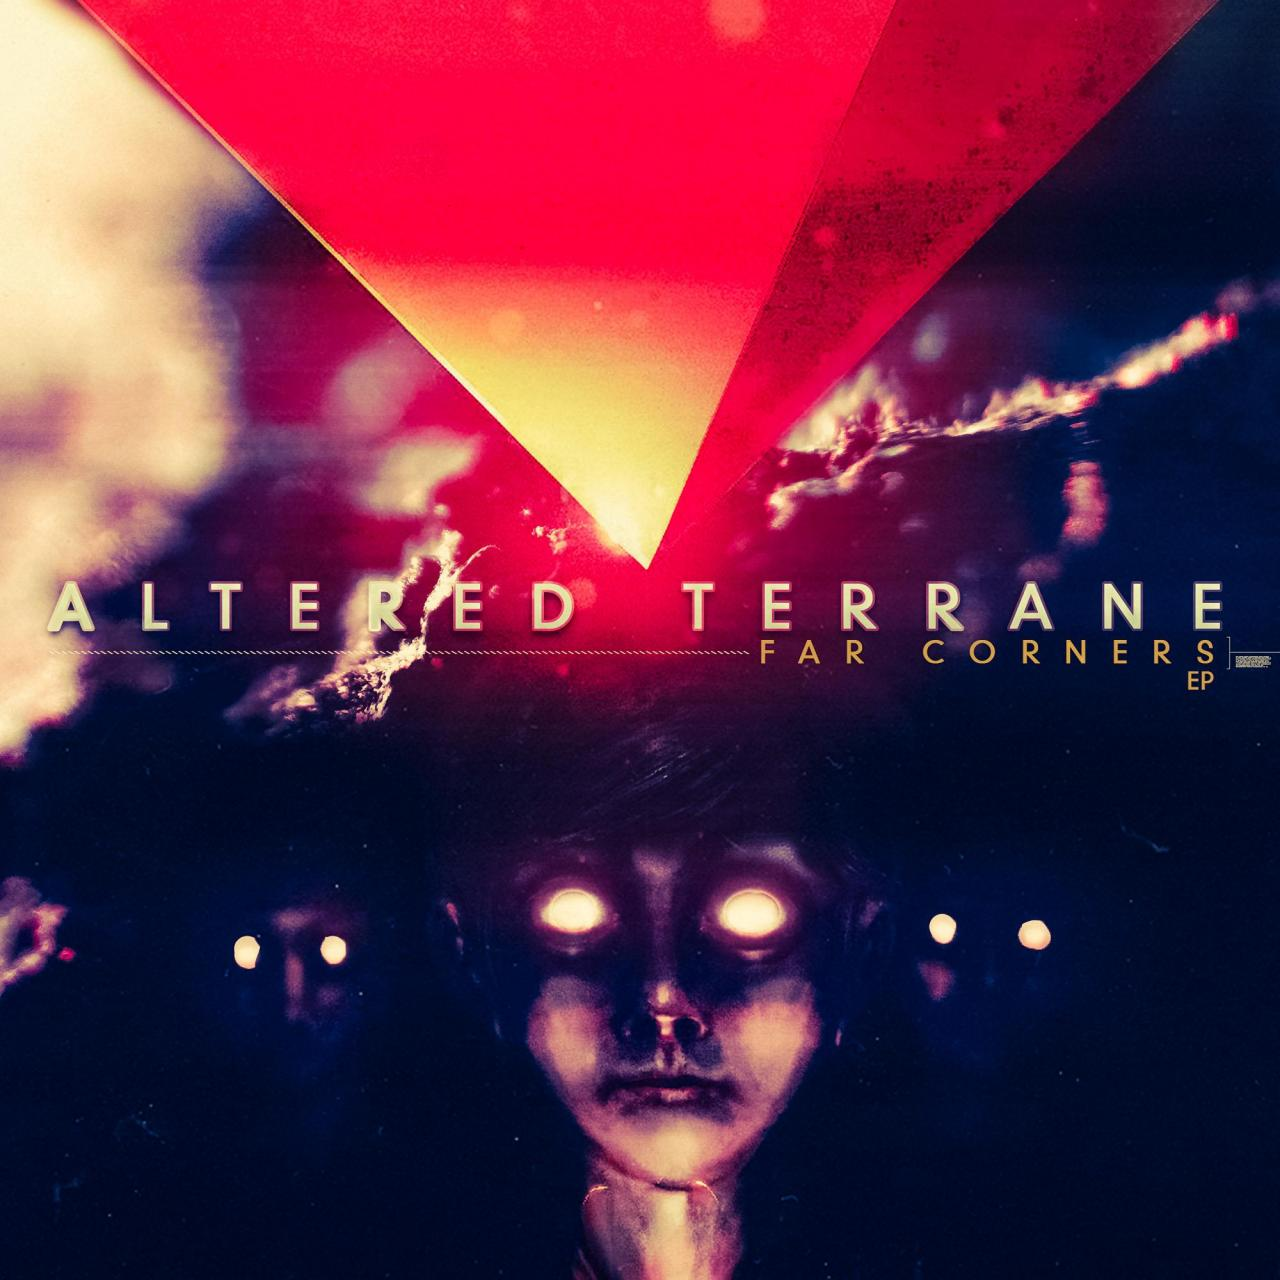 Altered Terrane - Far Corners EP